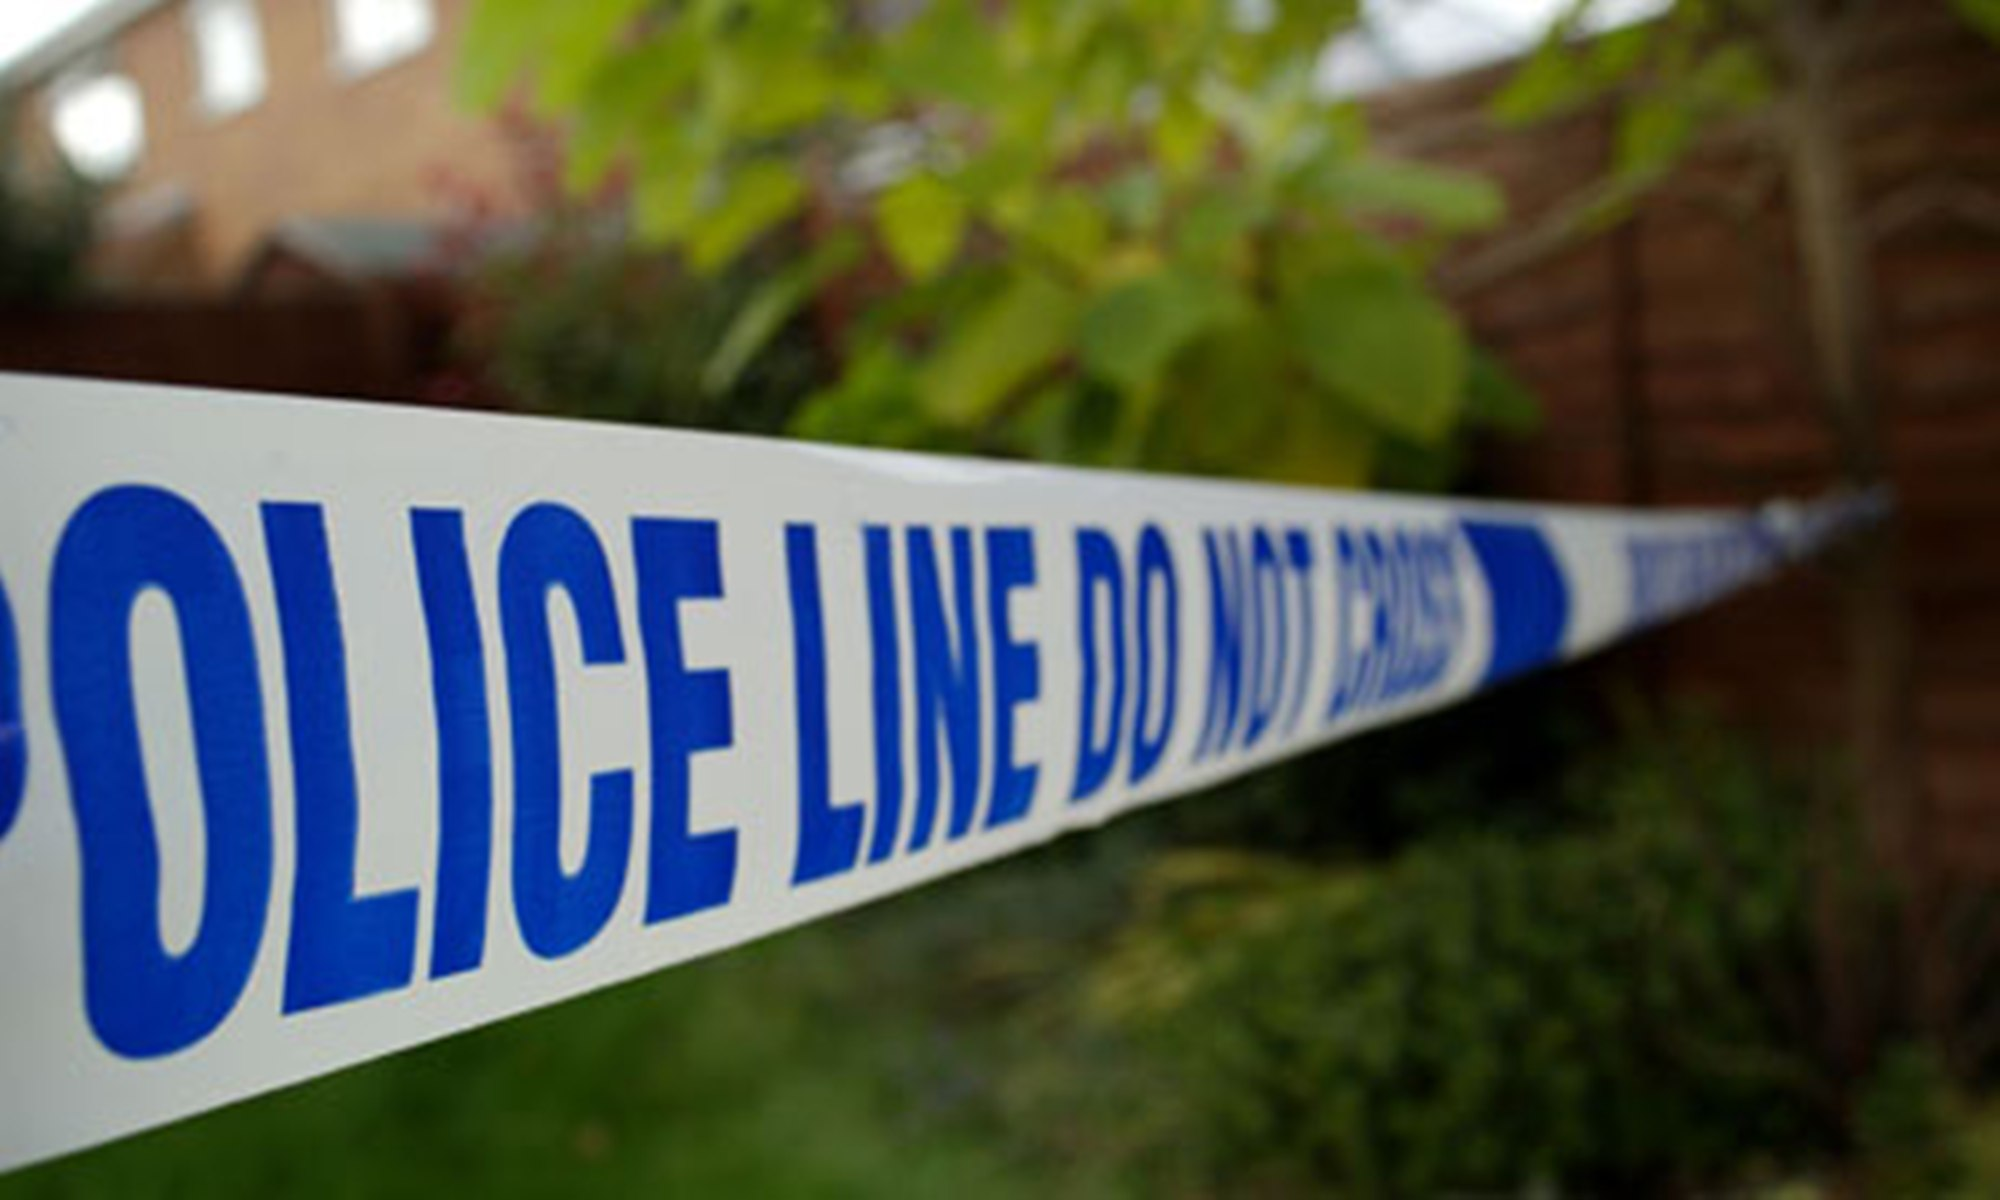 Body of man 'in distressed state' found on estate